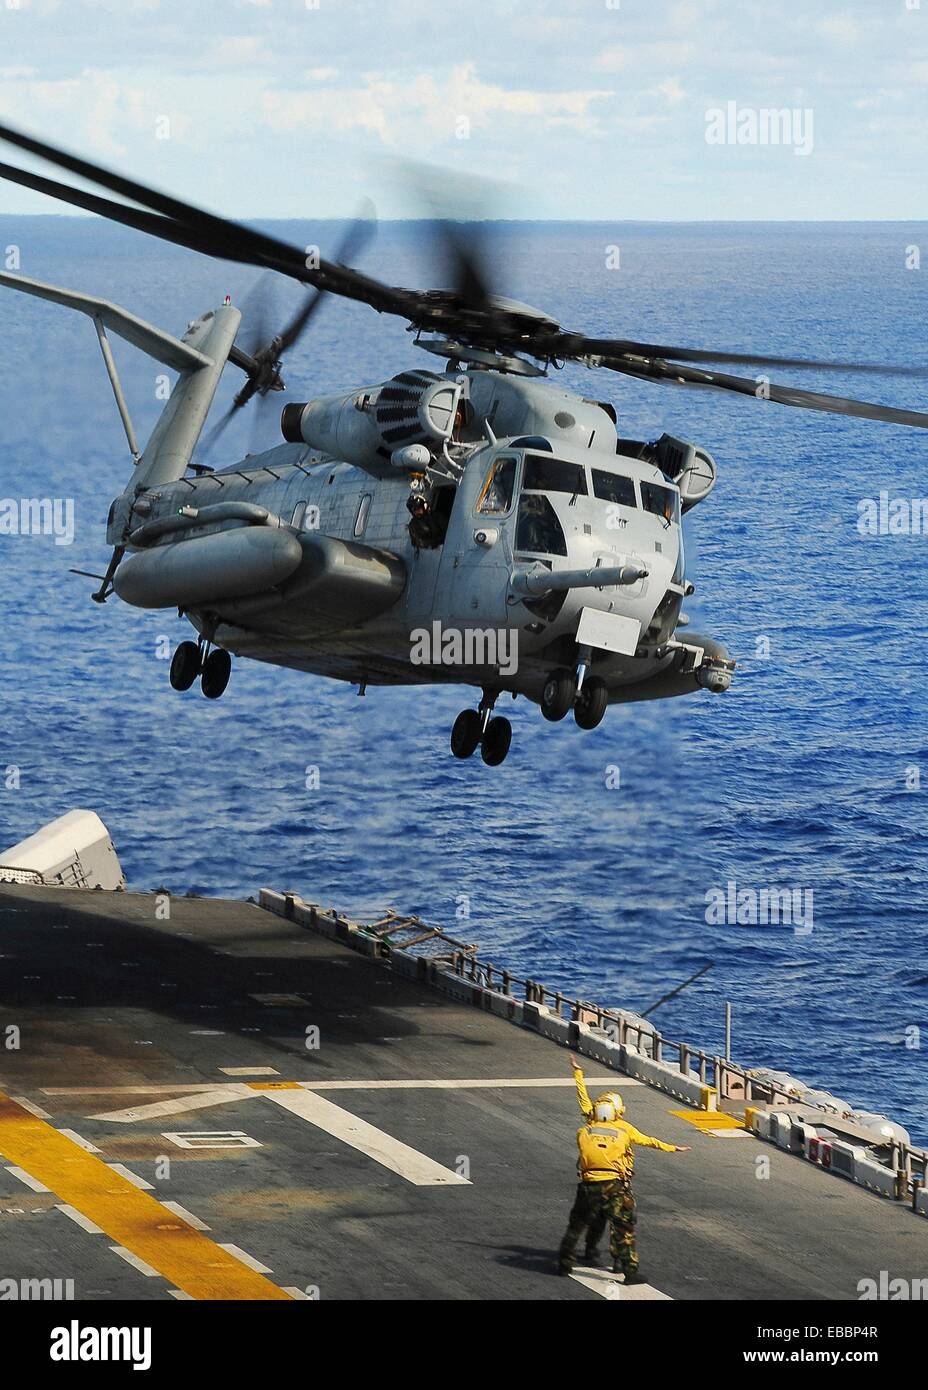 PHILIPPINE SEA Sept  14, 2010 A CH-53E Sea Stallion helicopter assigned to Marine Medium Helicopter Squadron HMM - Stock Image